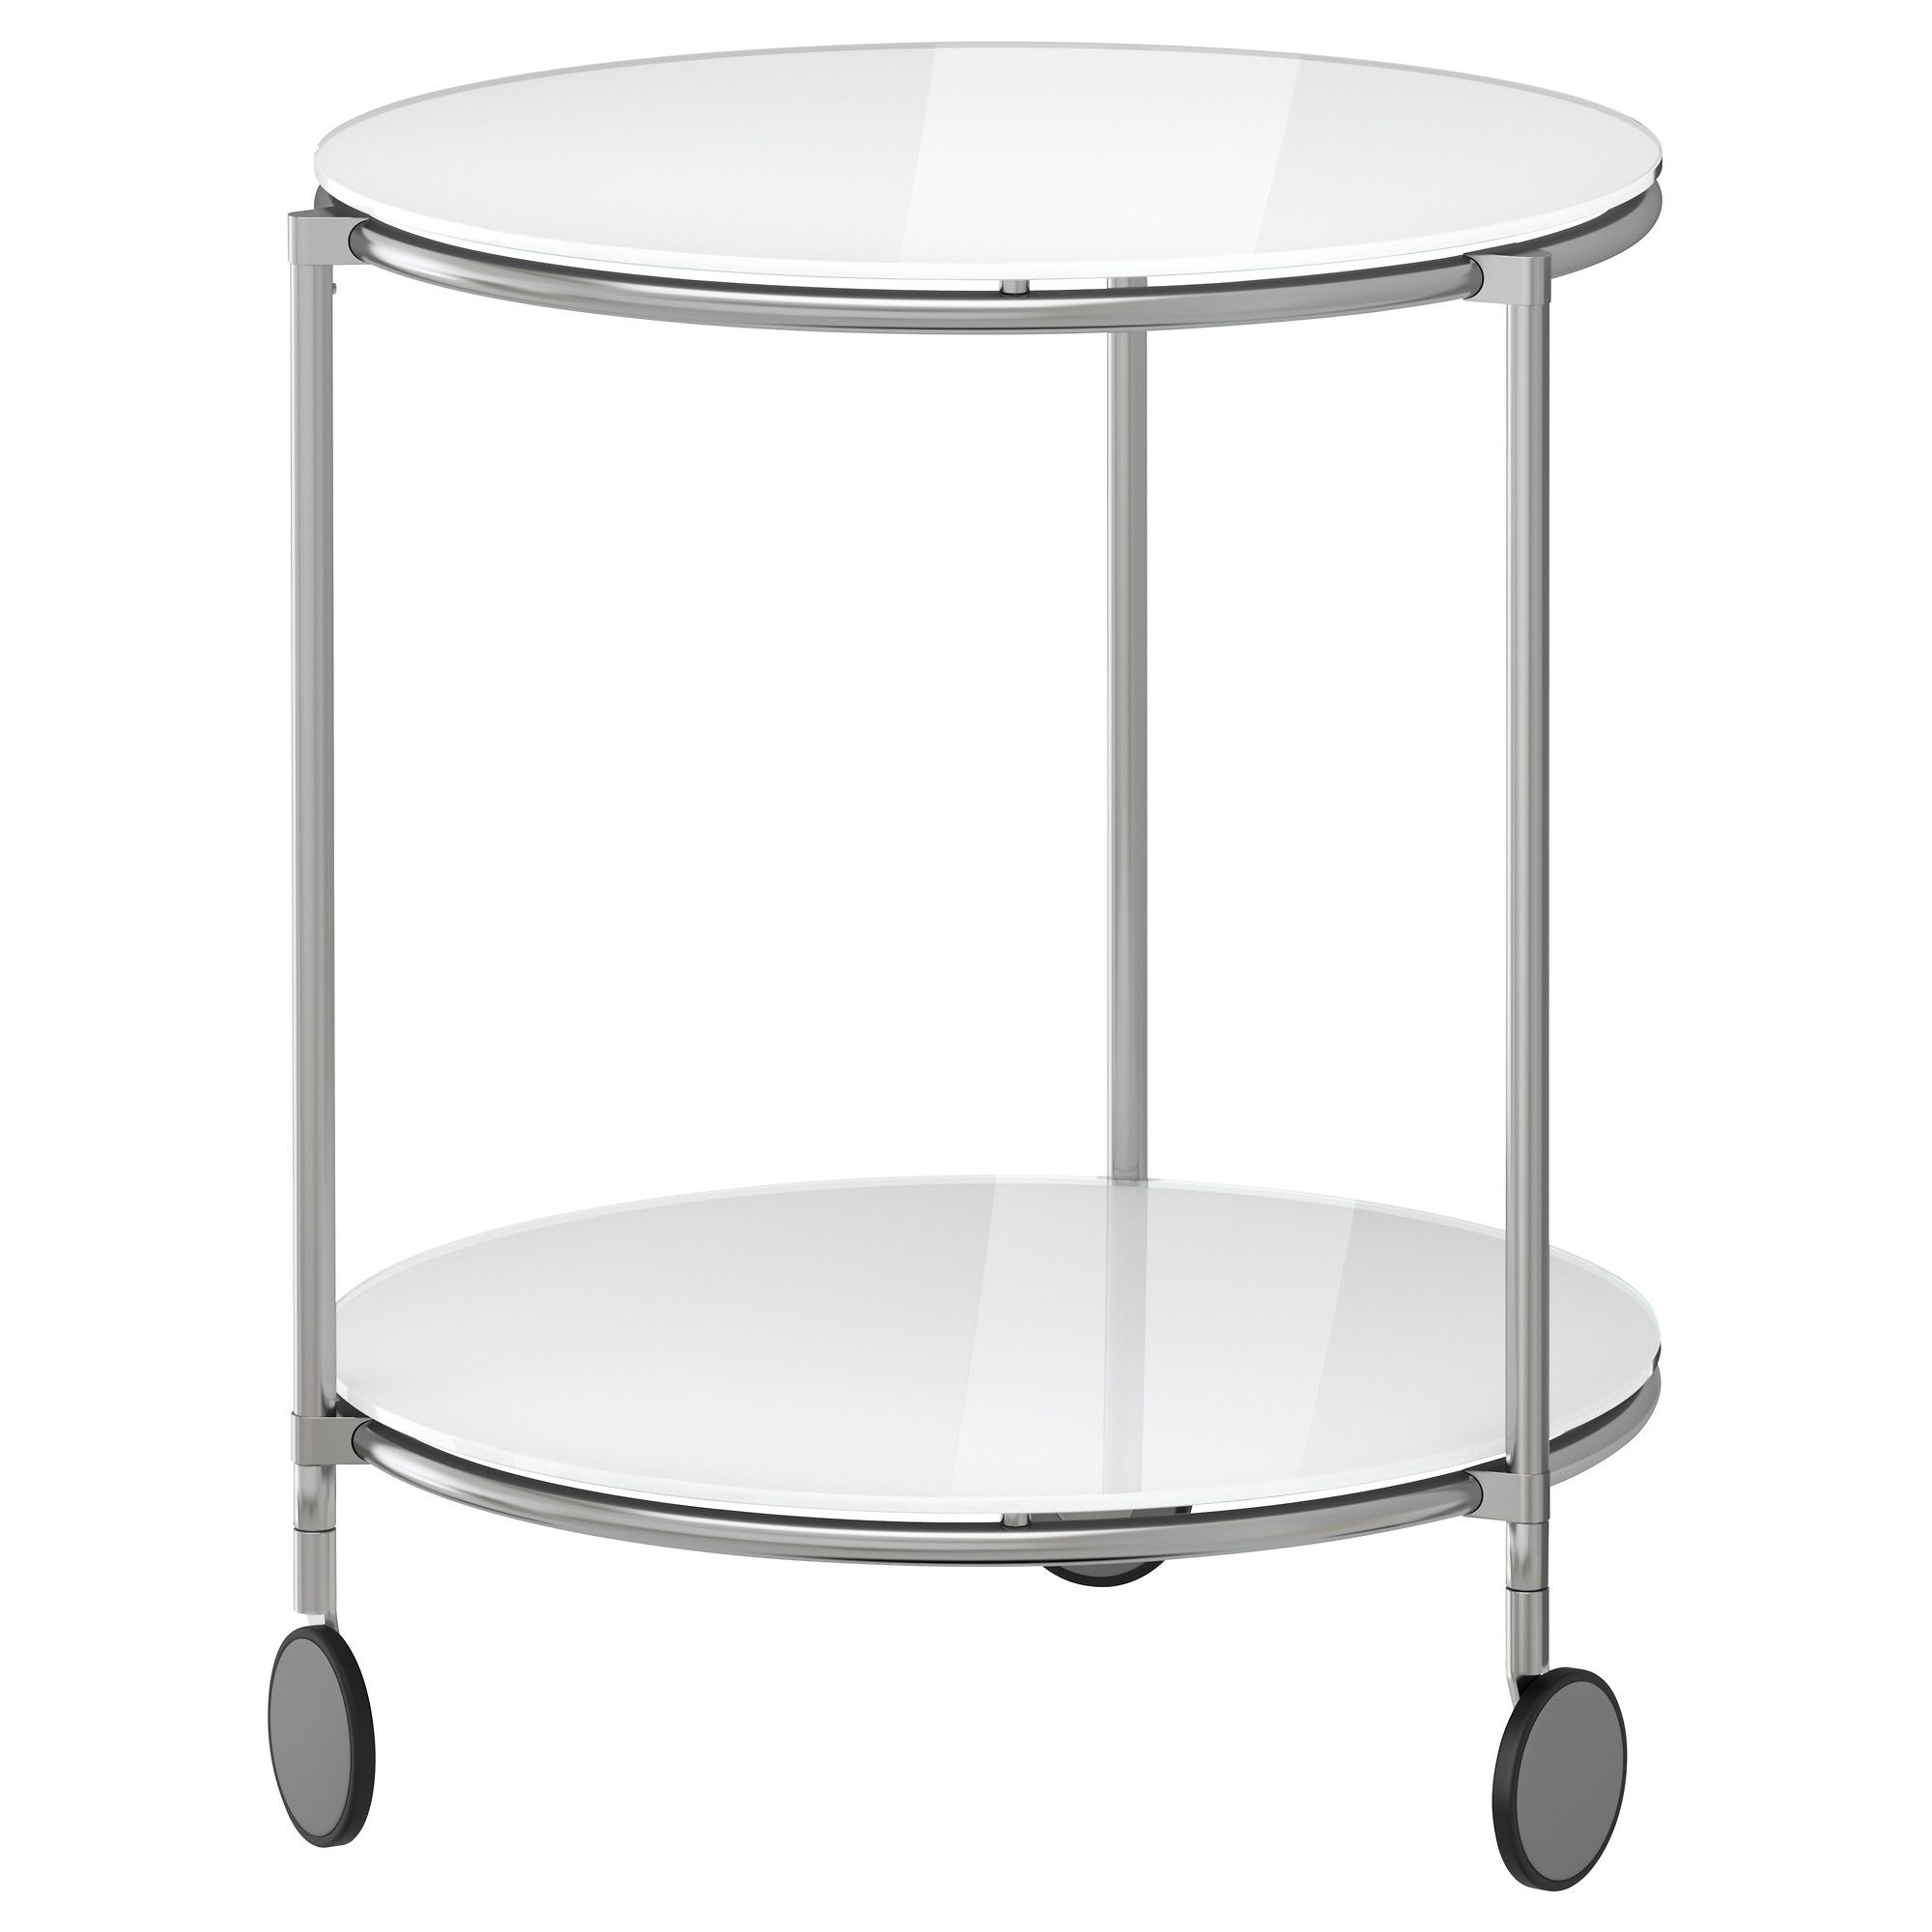 Table D'appoint Ikea Strind Table D Appoint Ikea Home Ikea